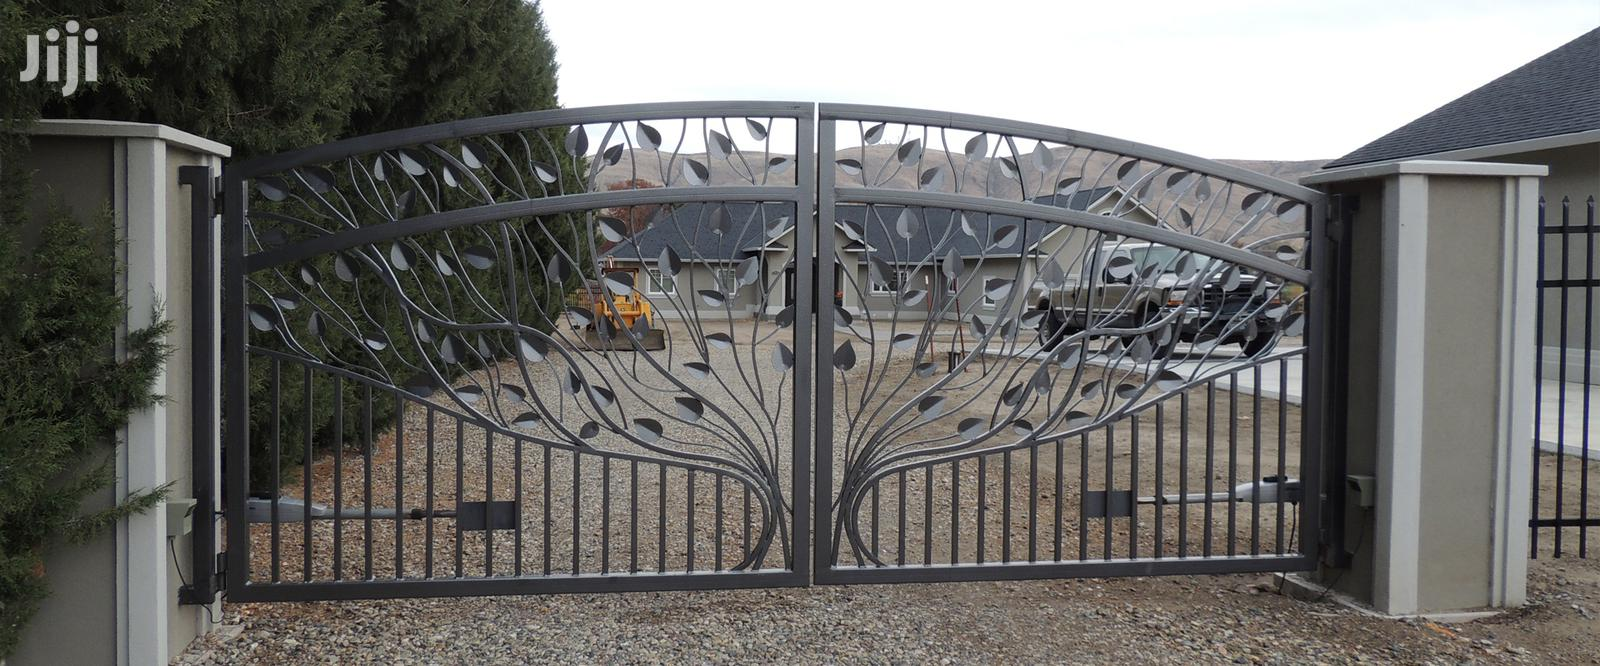 S030719 Wrought Iron Automatic Gates B | Doors for sale in Kampala, Central Region, Uganda